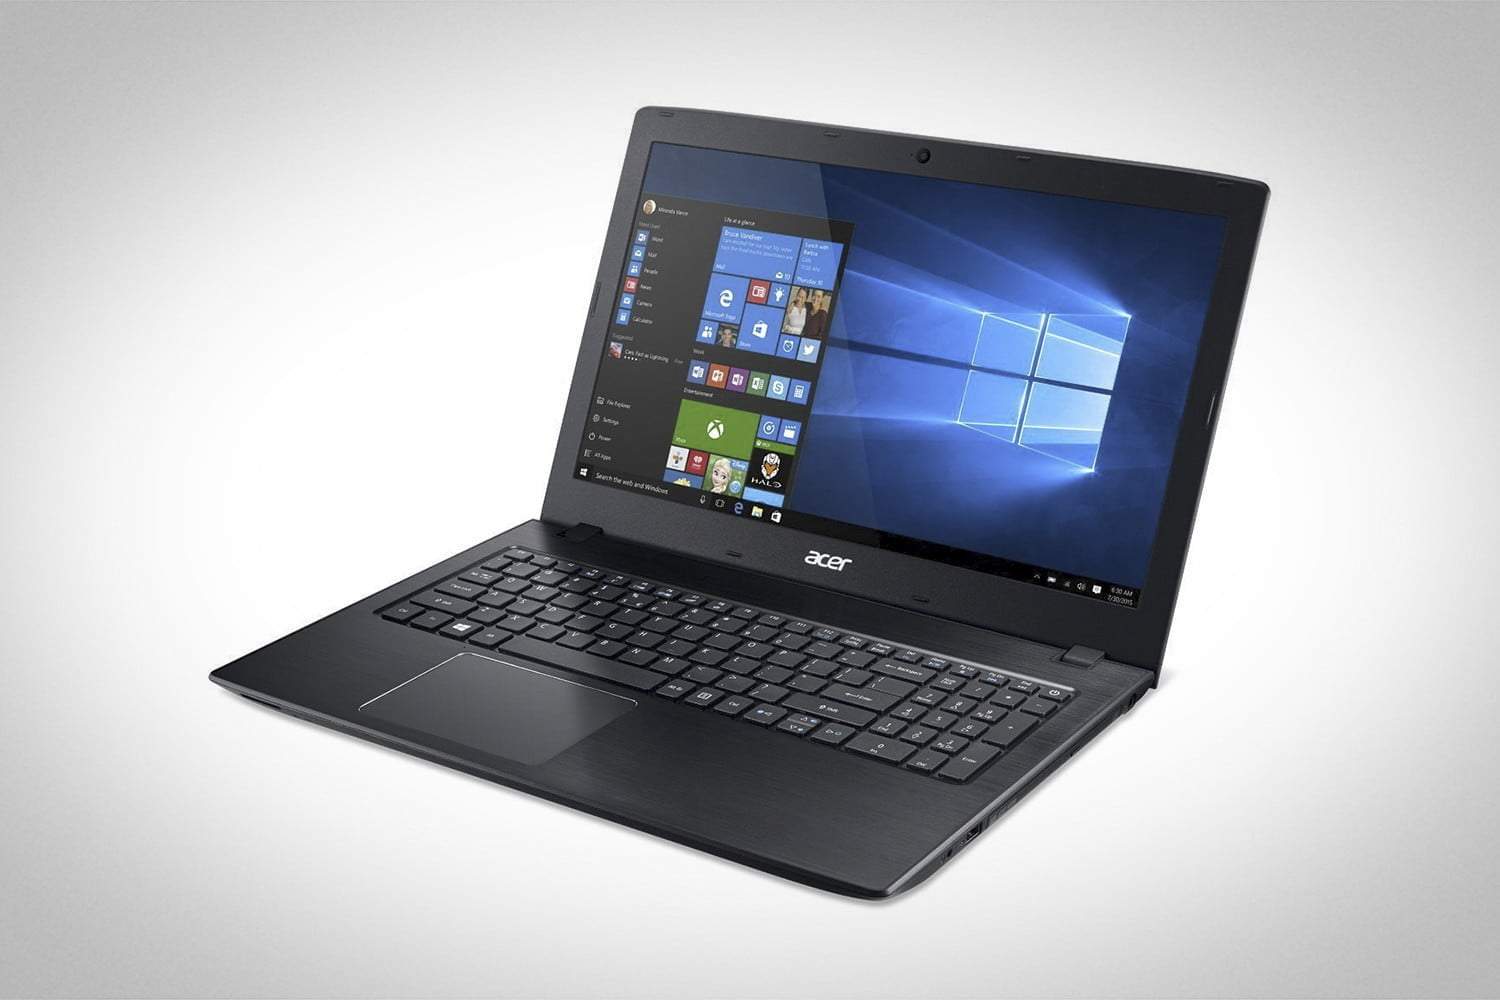 Acer Aspire Es 15 The Best Laptops For College You Can Buy